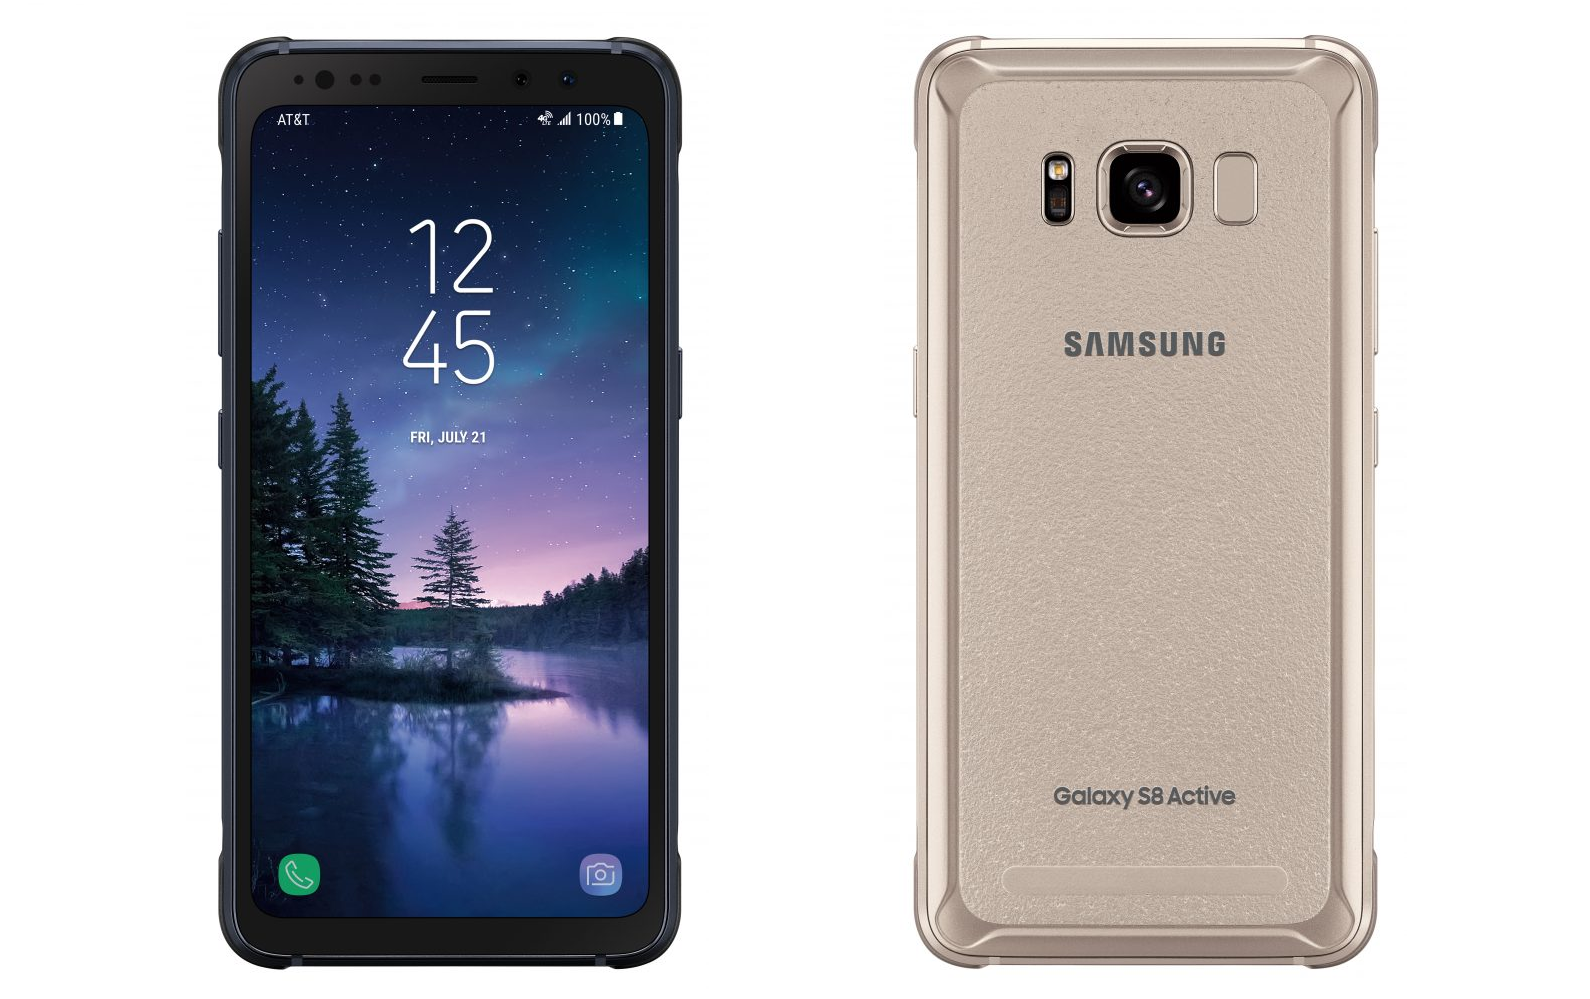 Samsung's Galaxy S8 Active Arrives Exclusively at AT&T This Week